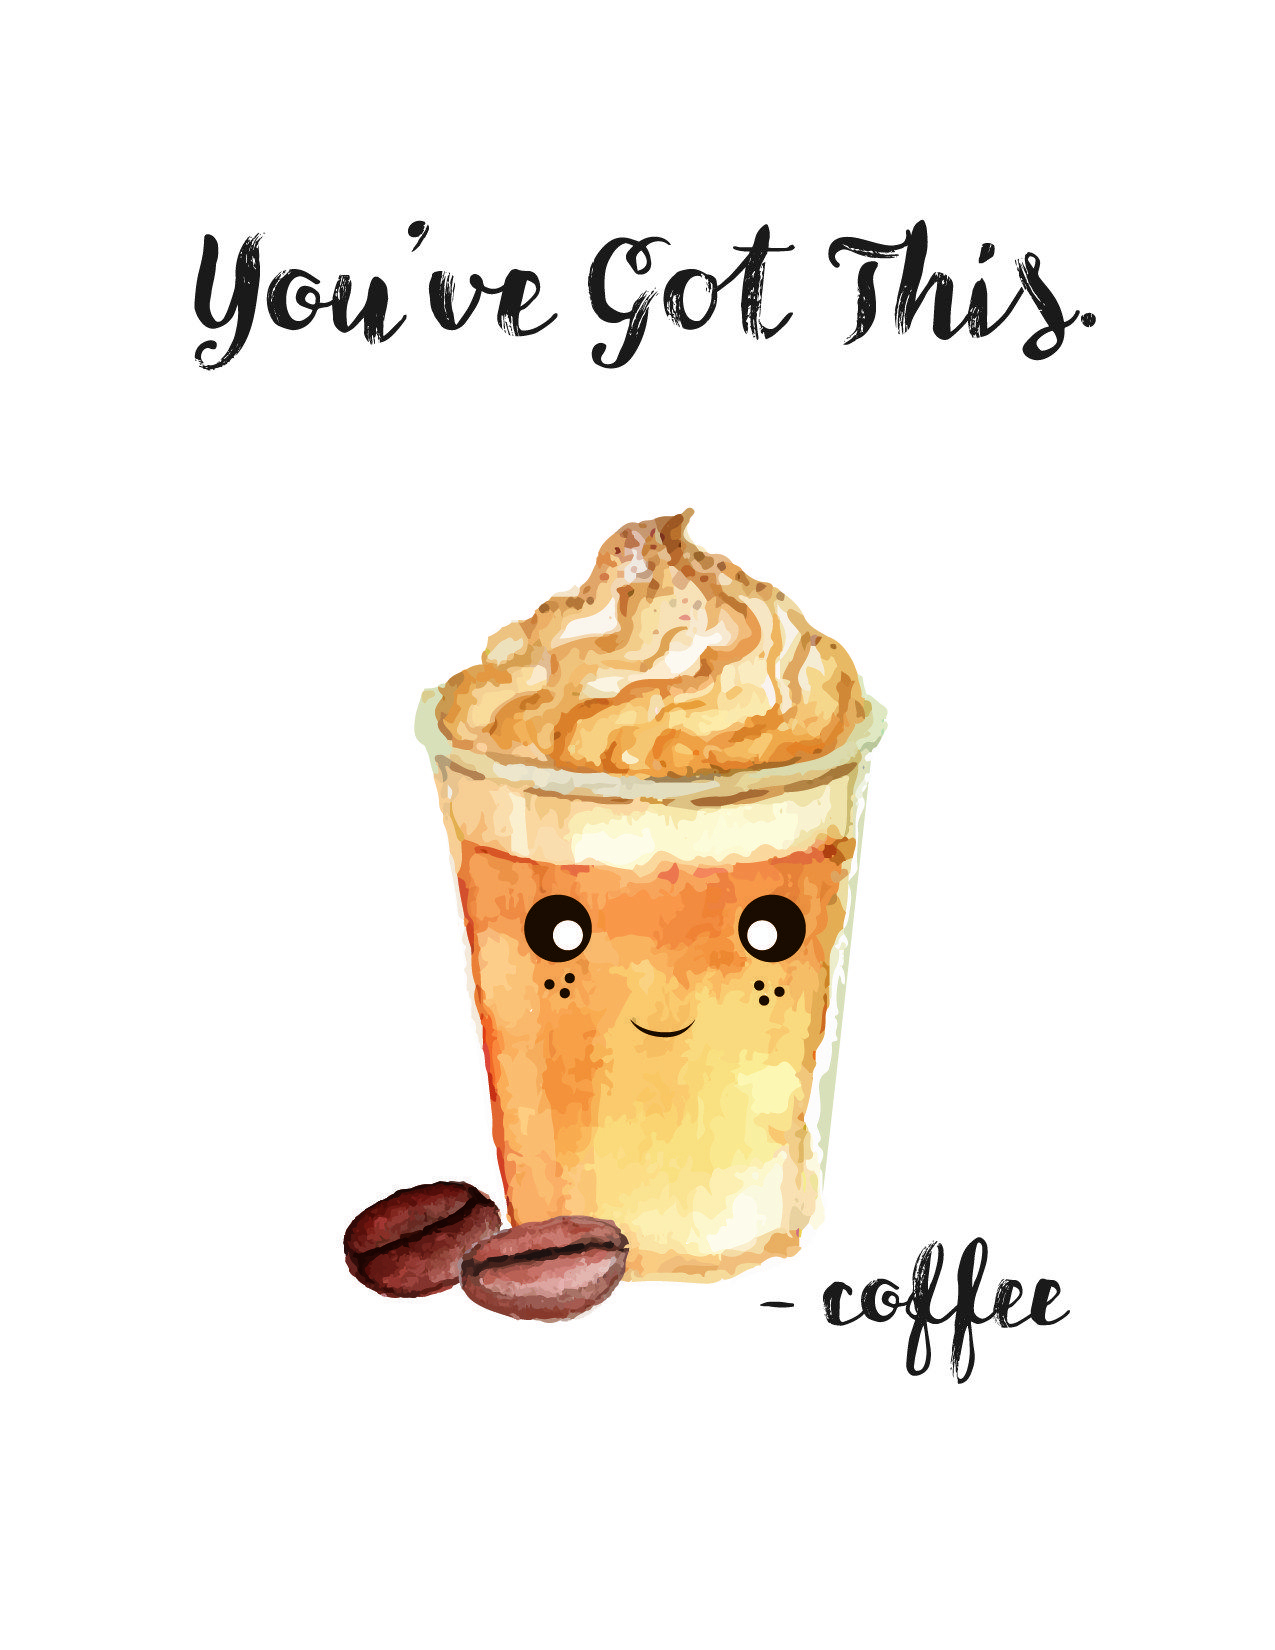 Free Printable Coffee Posters   Little Bitch   Coffee, Coffee Poster - Free Coffee Printable Art